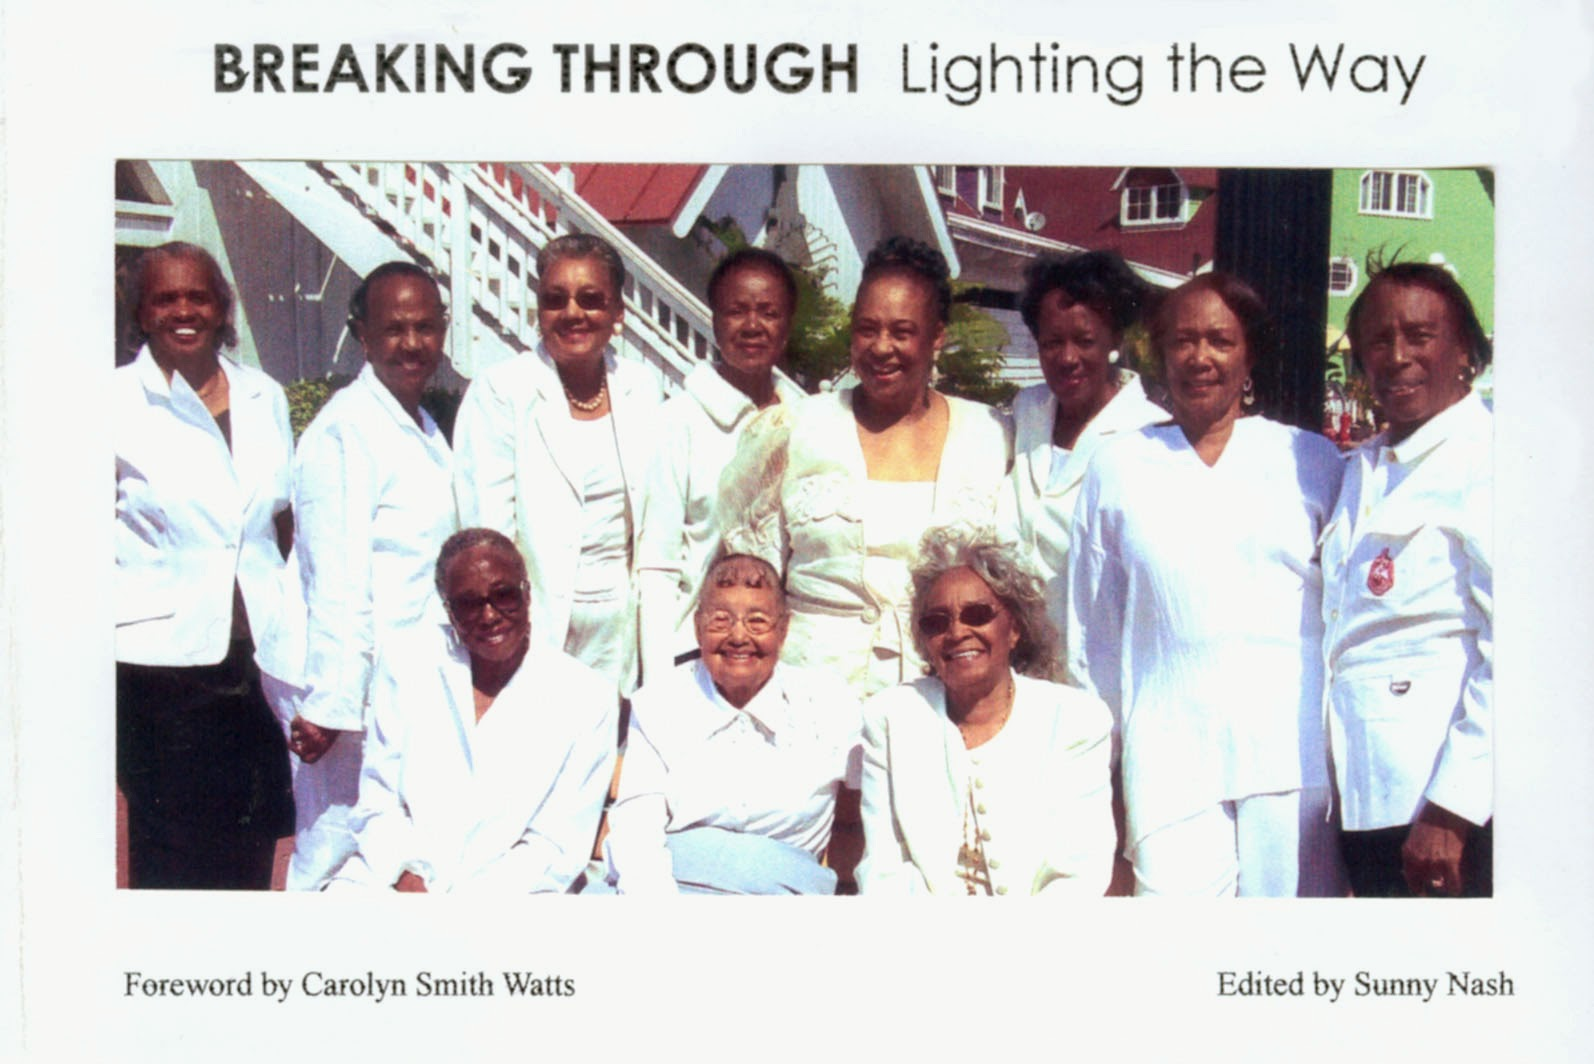 BREAKING THROUGH Lighting the Way edited by Sunny Nash, Foreword by Carolyn Smith Watts